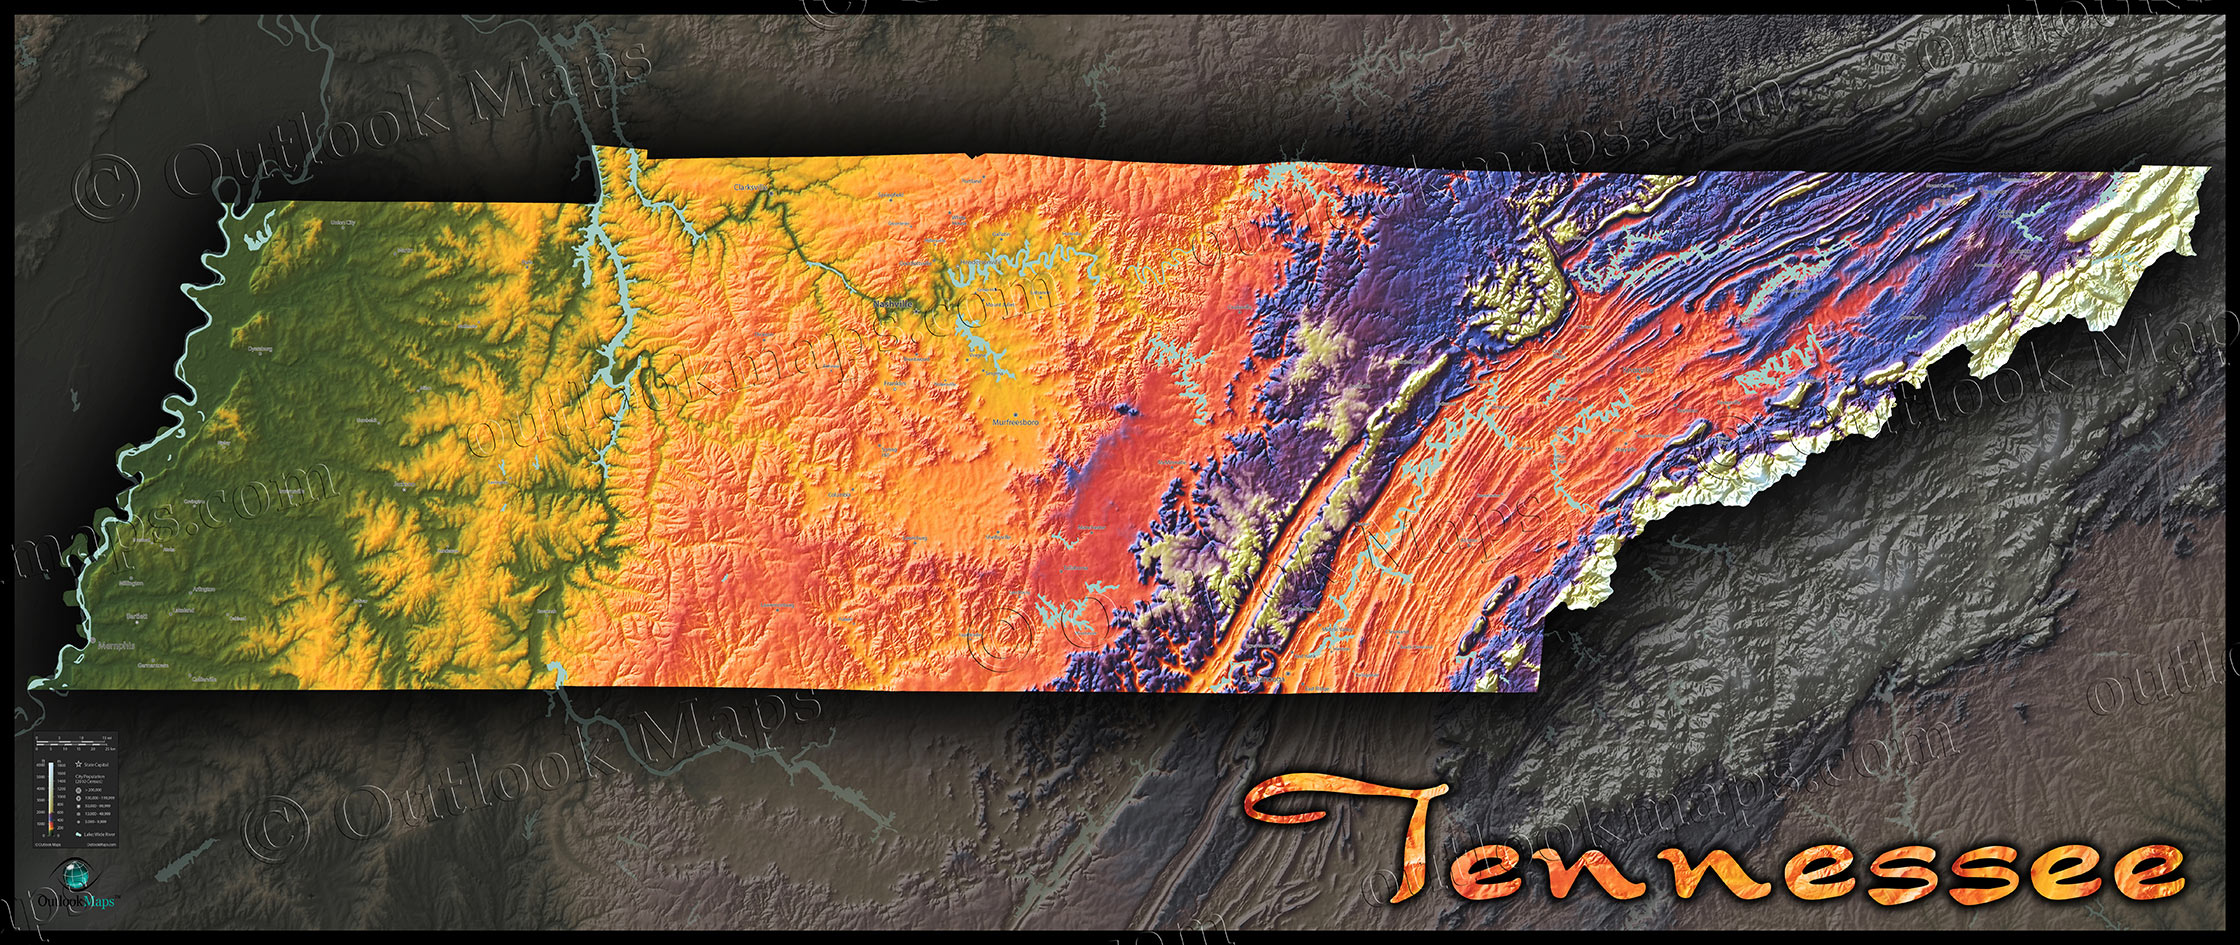 Tennessee Physical Map | Topographic with Elevation Colors